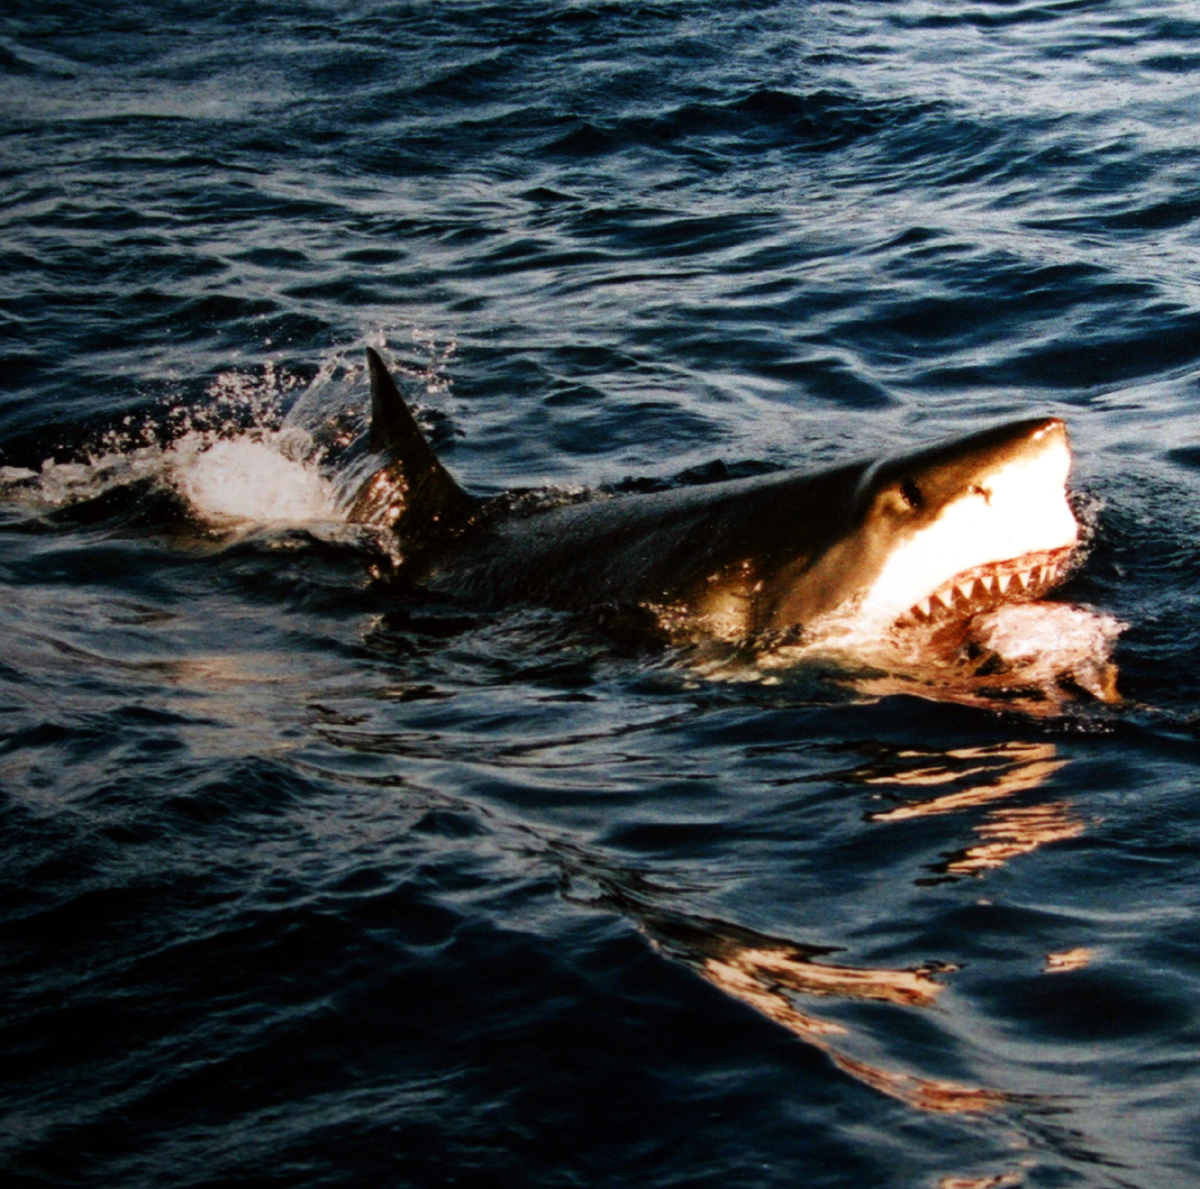 Photo of great white on surface with open jaws reveling meal.